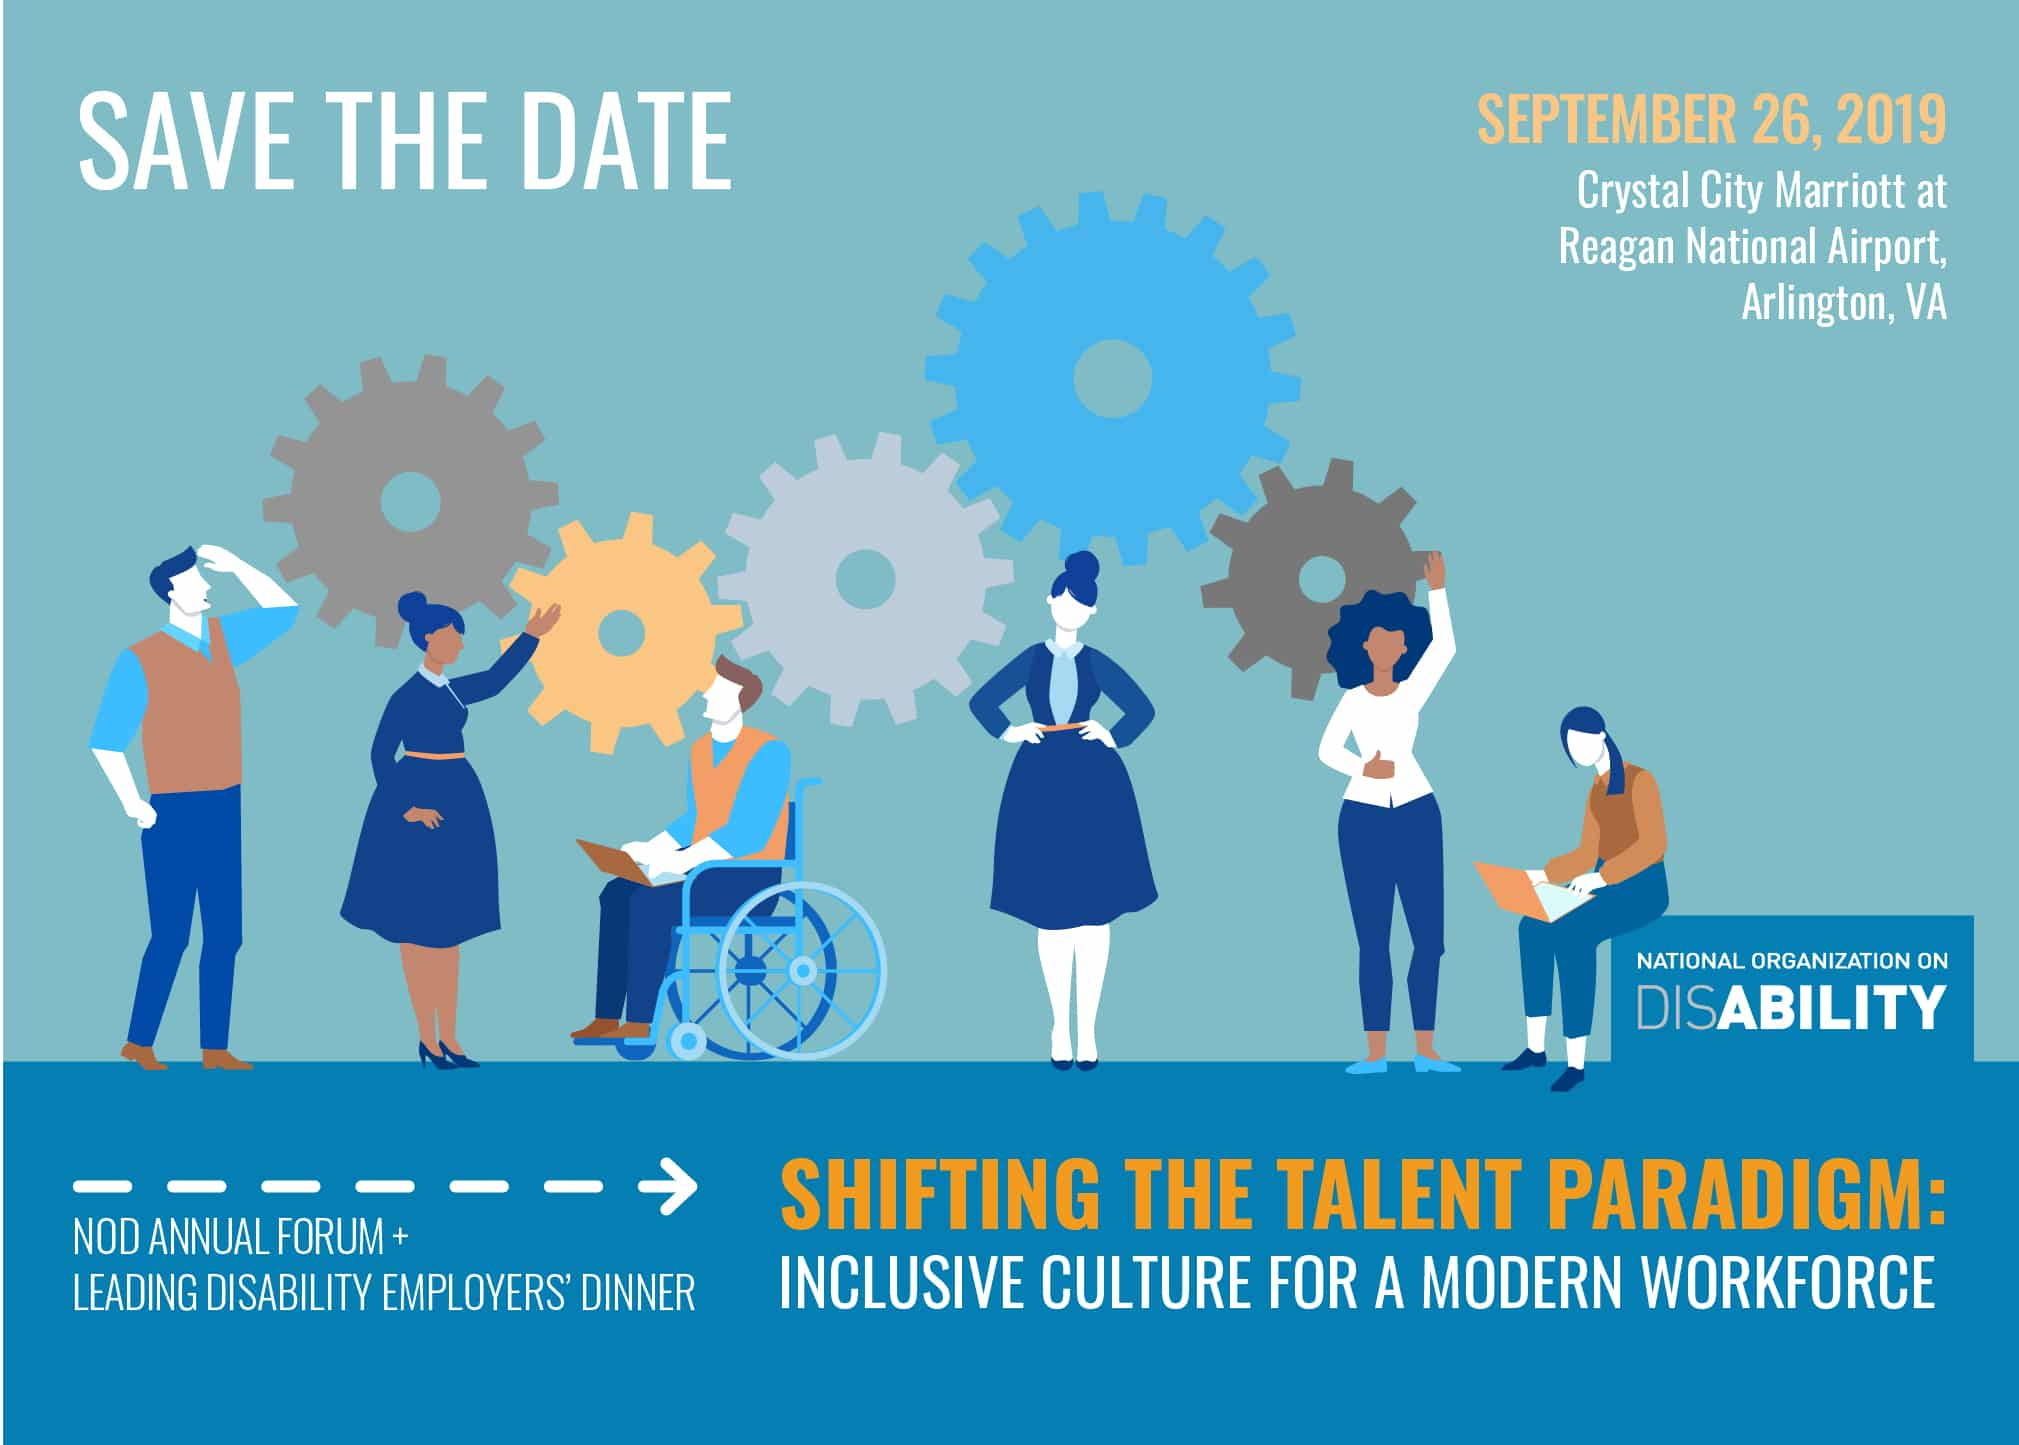 September 26, 2019 | Shifting the Talent Paradigm: Inclusive Culture for a Modern Workforce NOD Corporate Leadership Council Annual Forum + Leading Disability Employers' Dinner Crystal City Marriott at Reagan National Airport, Arlington, VA